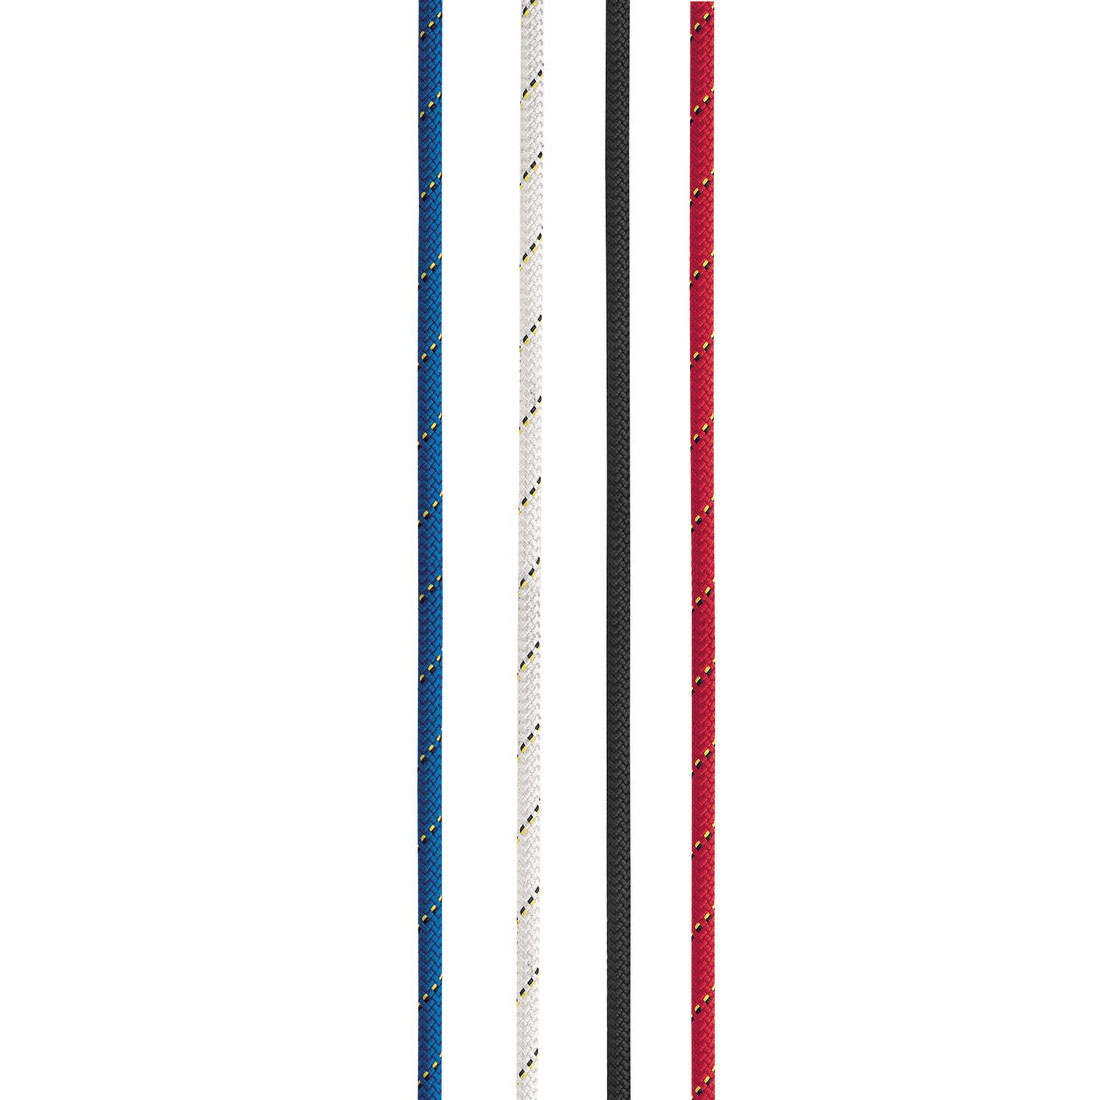 VECTOR rope, NFPA, 11mm x 61m (200ft)